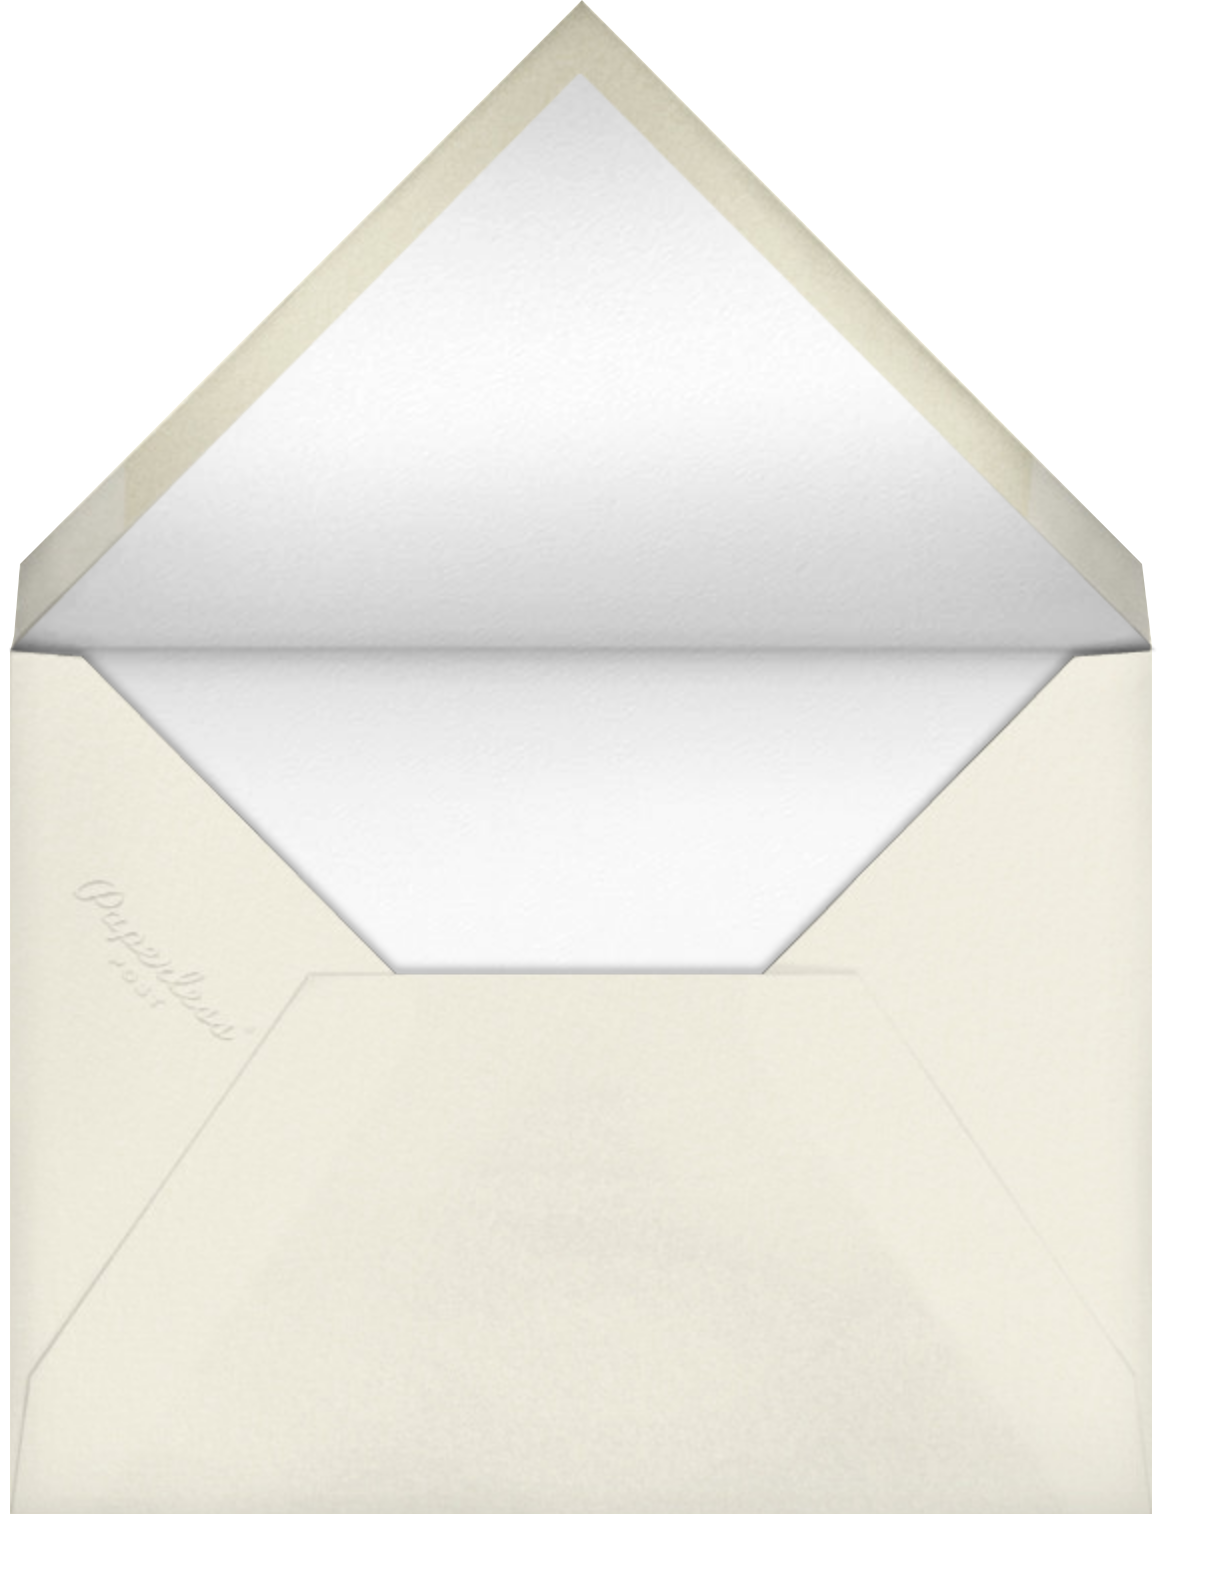 Whale (Pink) - Paperless Post - null - envelope back